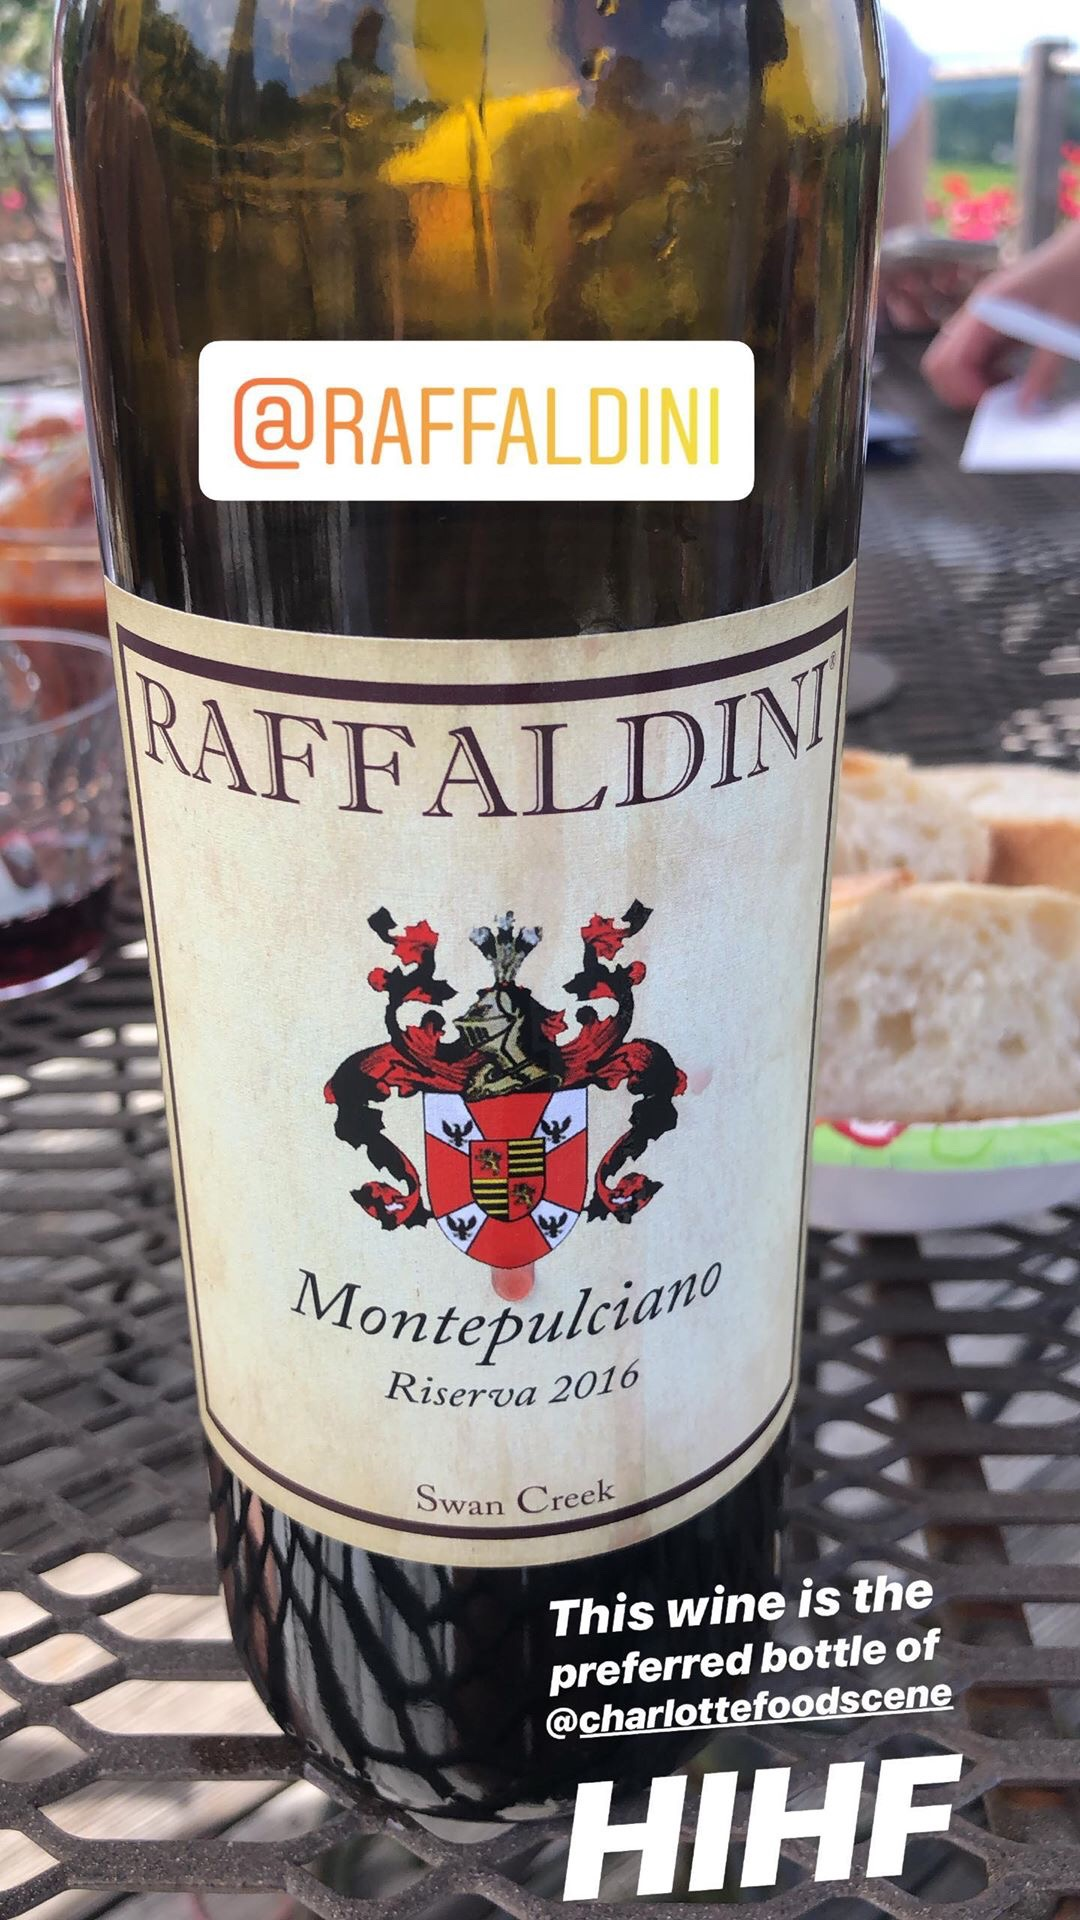 Raffaldini Vineyards - This vineyard was my favorite, and I clearly am not alone, because this place was just packed. The grounds genuinely reminded me of Italy, there was live music, I loved their reds, and we had dessert. What else could a girl want?We tried their famous Montepulciano Riserva (seriously famous – this wine has won awards!) with some meatballs Jessica made, and then paired a Sangiovese with some delicious homemade brownies! Are you seeing the theme here that Jessica is an awesome cook and an excellent wine spirit guide? She was our van DD, chef, and teacher! Who could ask for anything more? We spent a good amount of time here people watching and sitting on their upstairs porch listening to the band. I also bought a bottle of Montepulciano, which ended up being $32 and officially is the fanciest bottle of wine I've ever purchased for myself. Top dollar, baby.